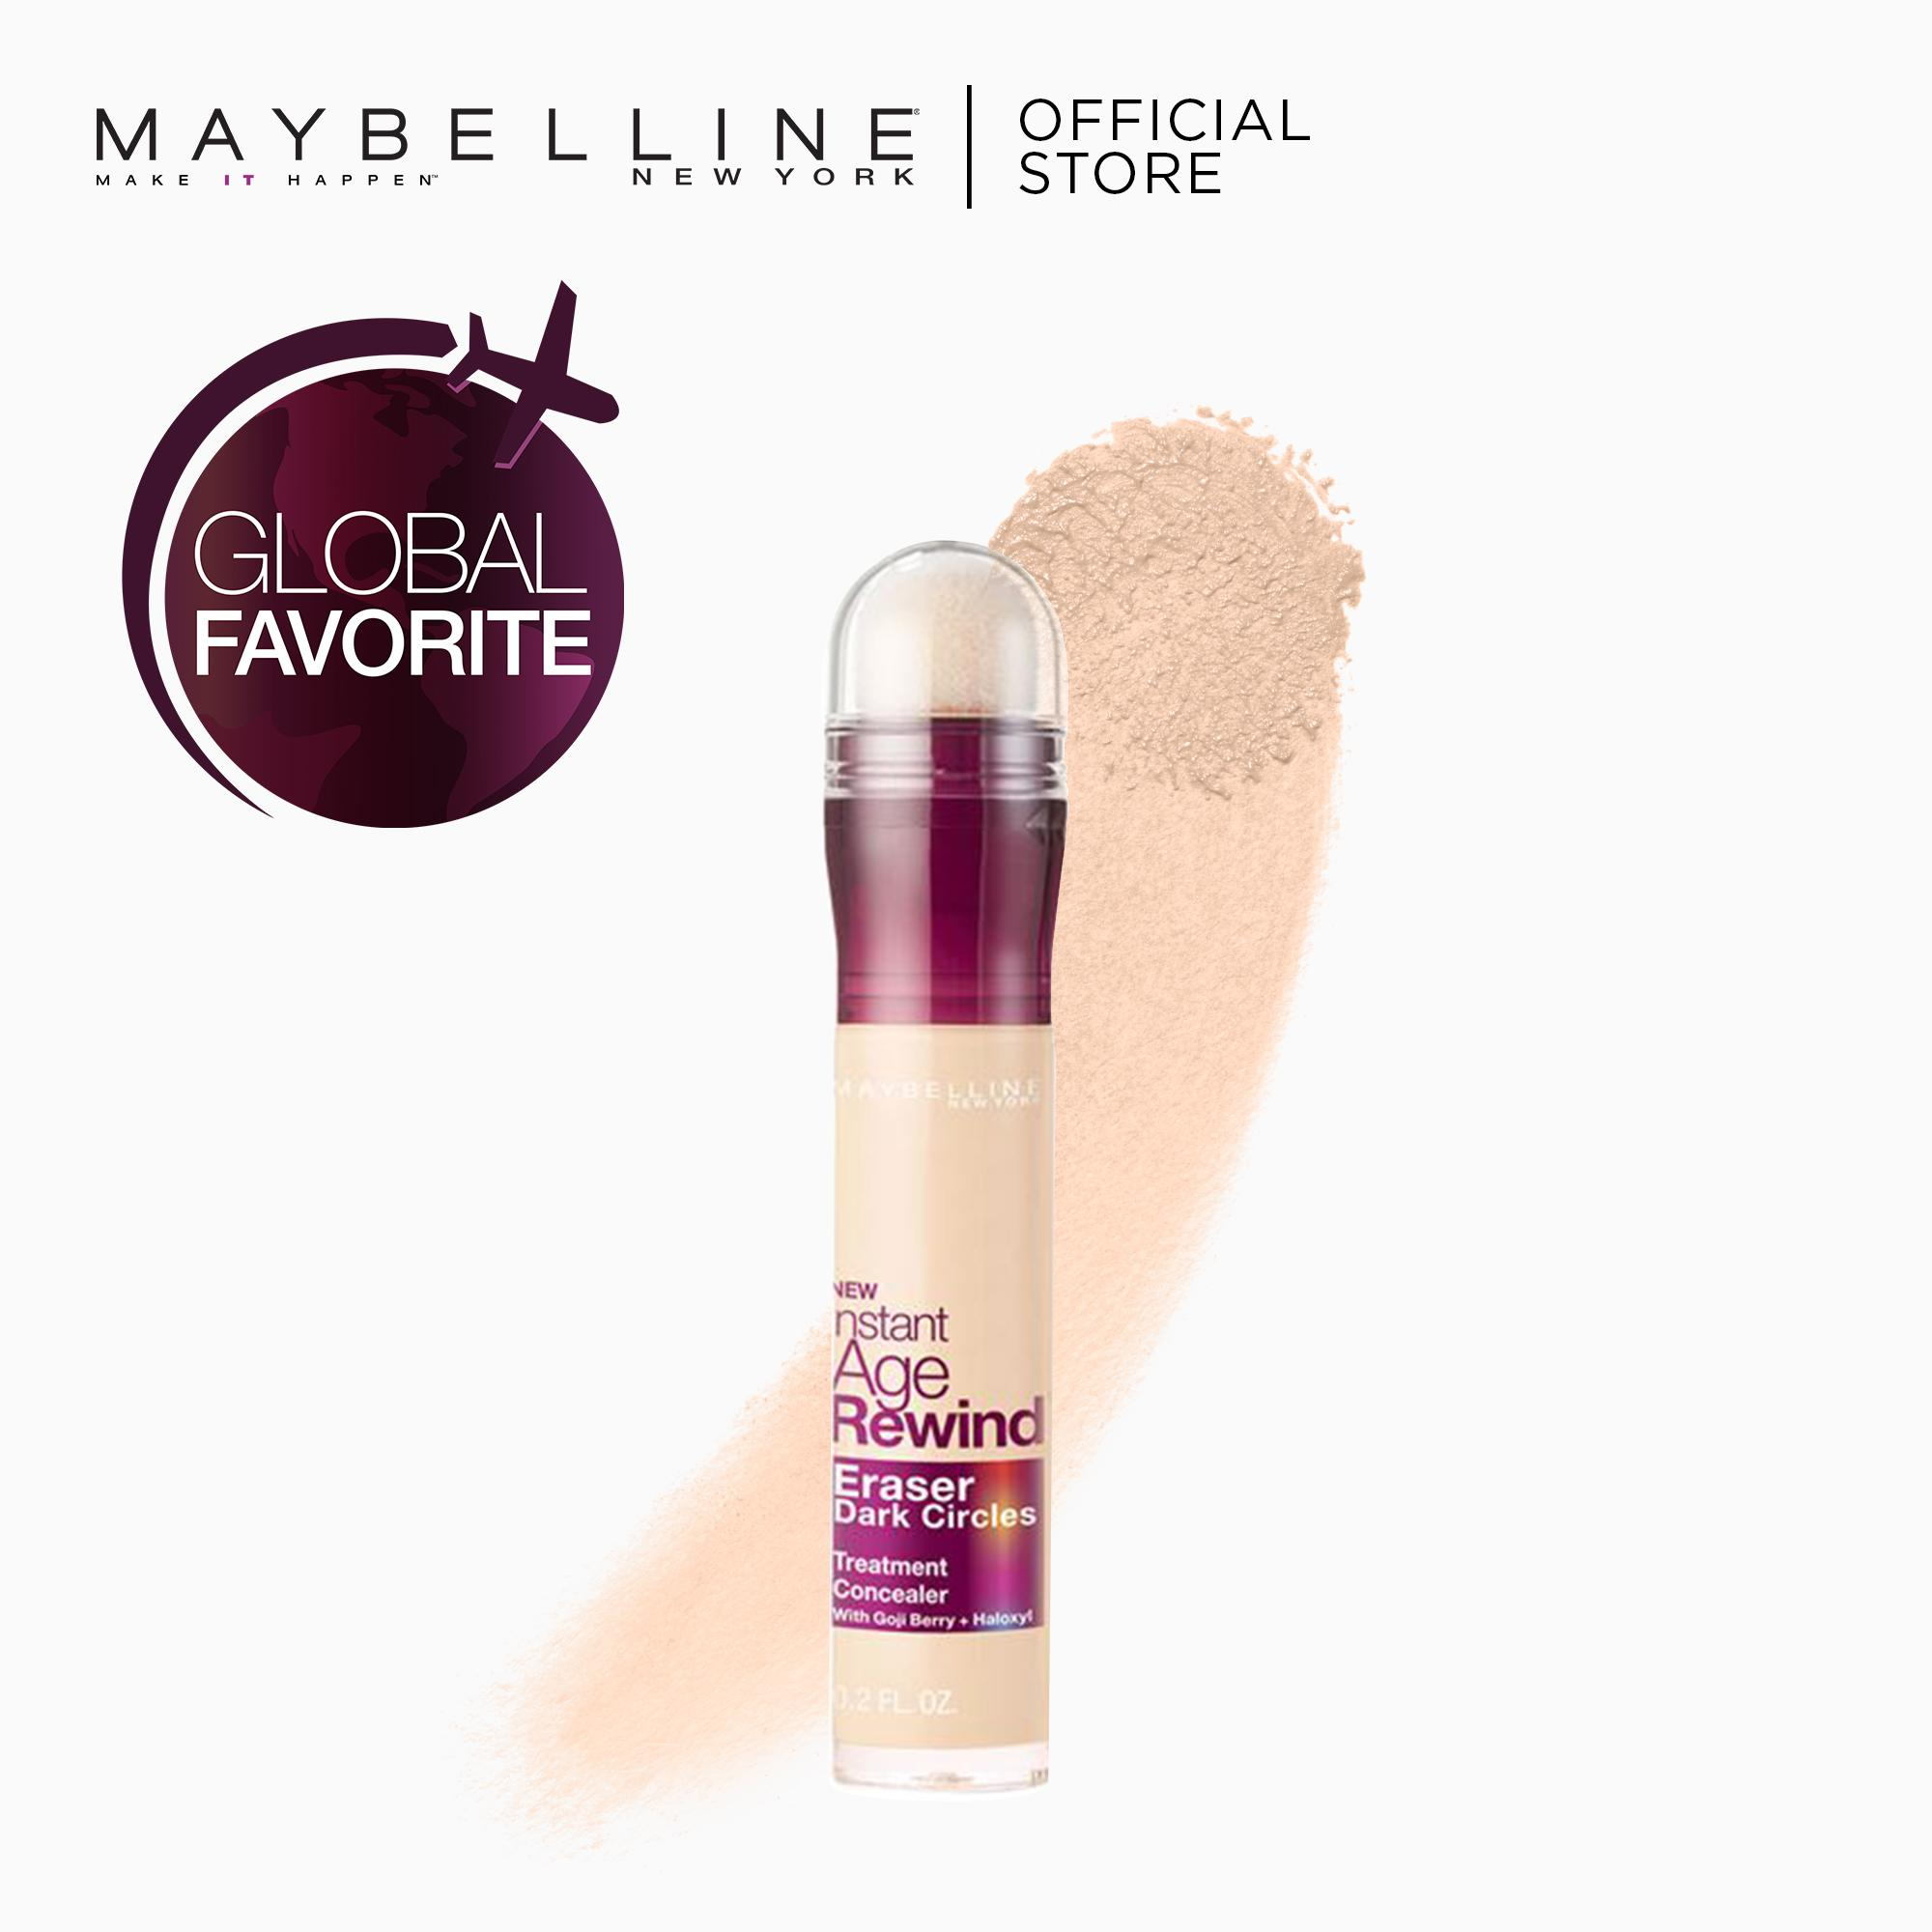 Instant Age Rewind 2-in-1 Concealer+Treatment - 100 Ivory [Global Favorite] by Maybelline Philippines